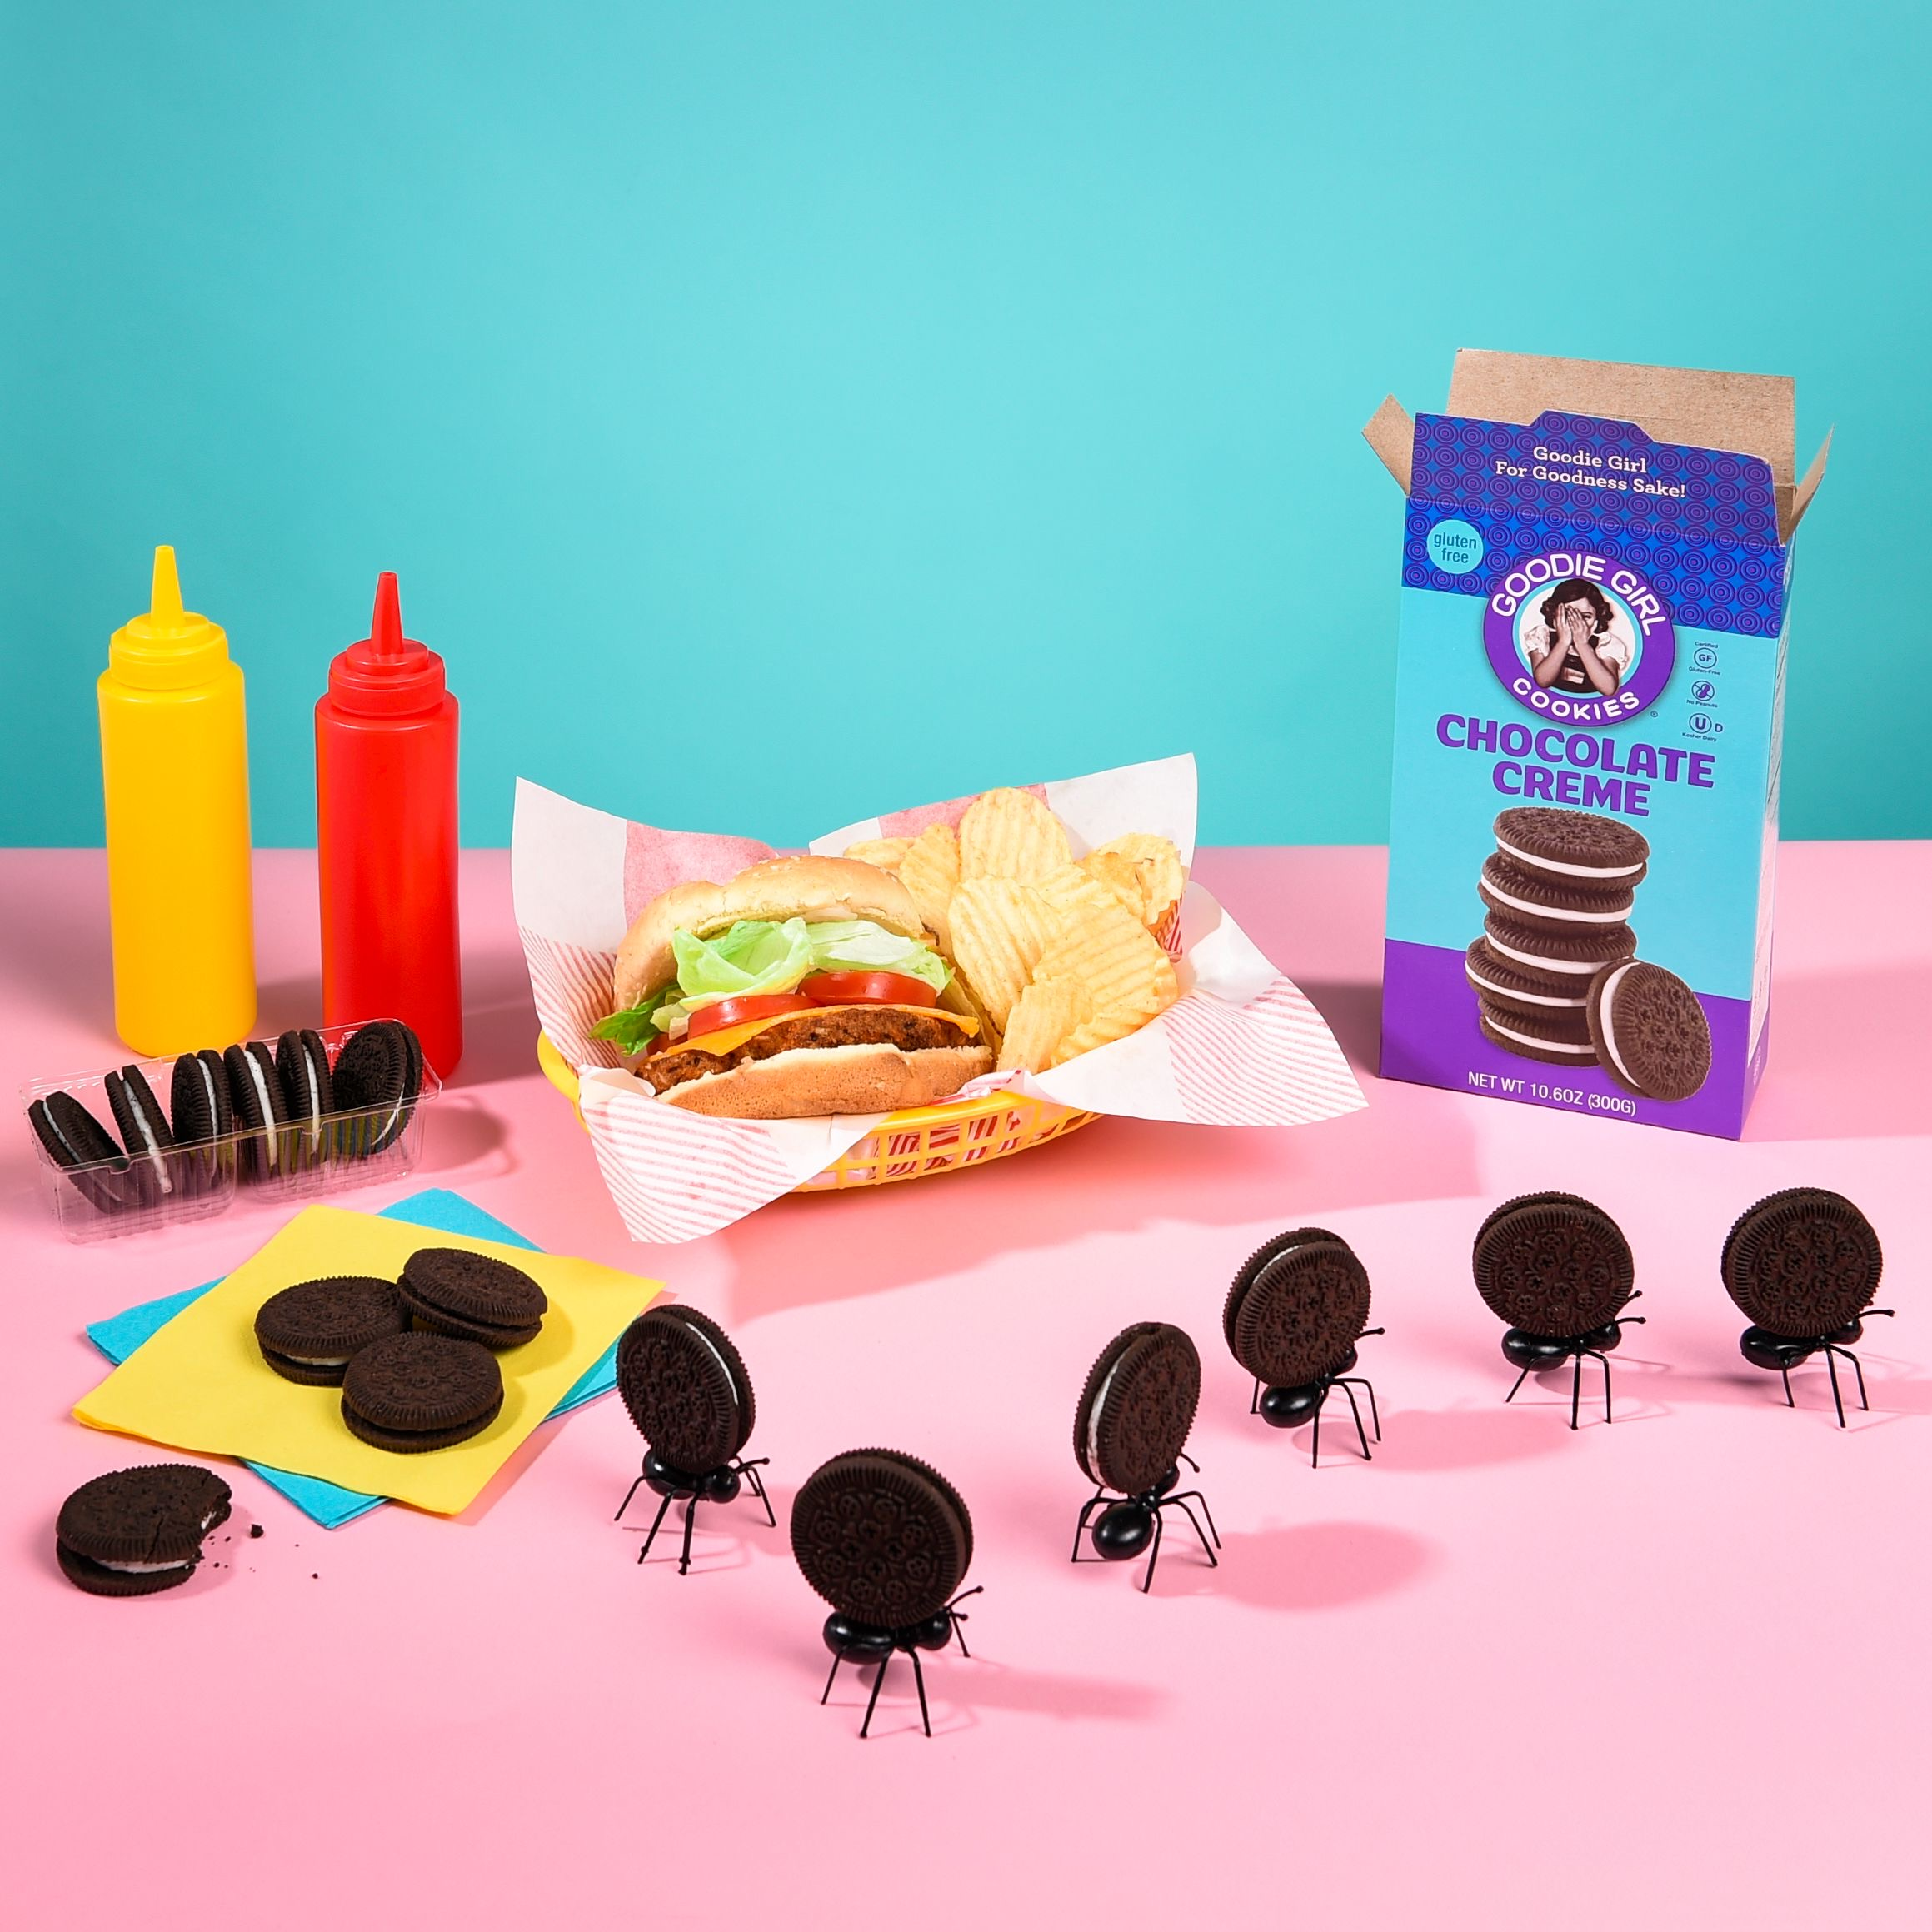 Goodie GIrl Cookies with burger, fries and ants